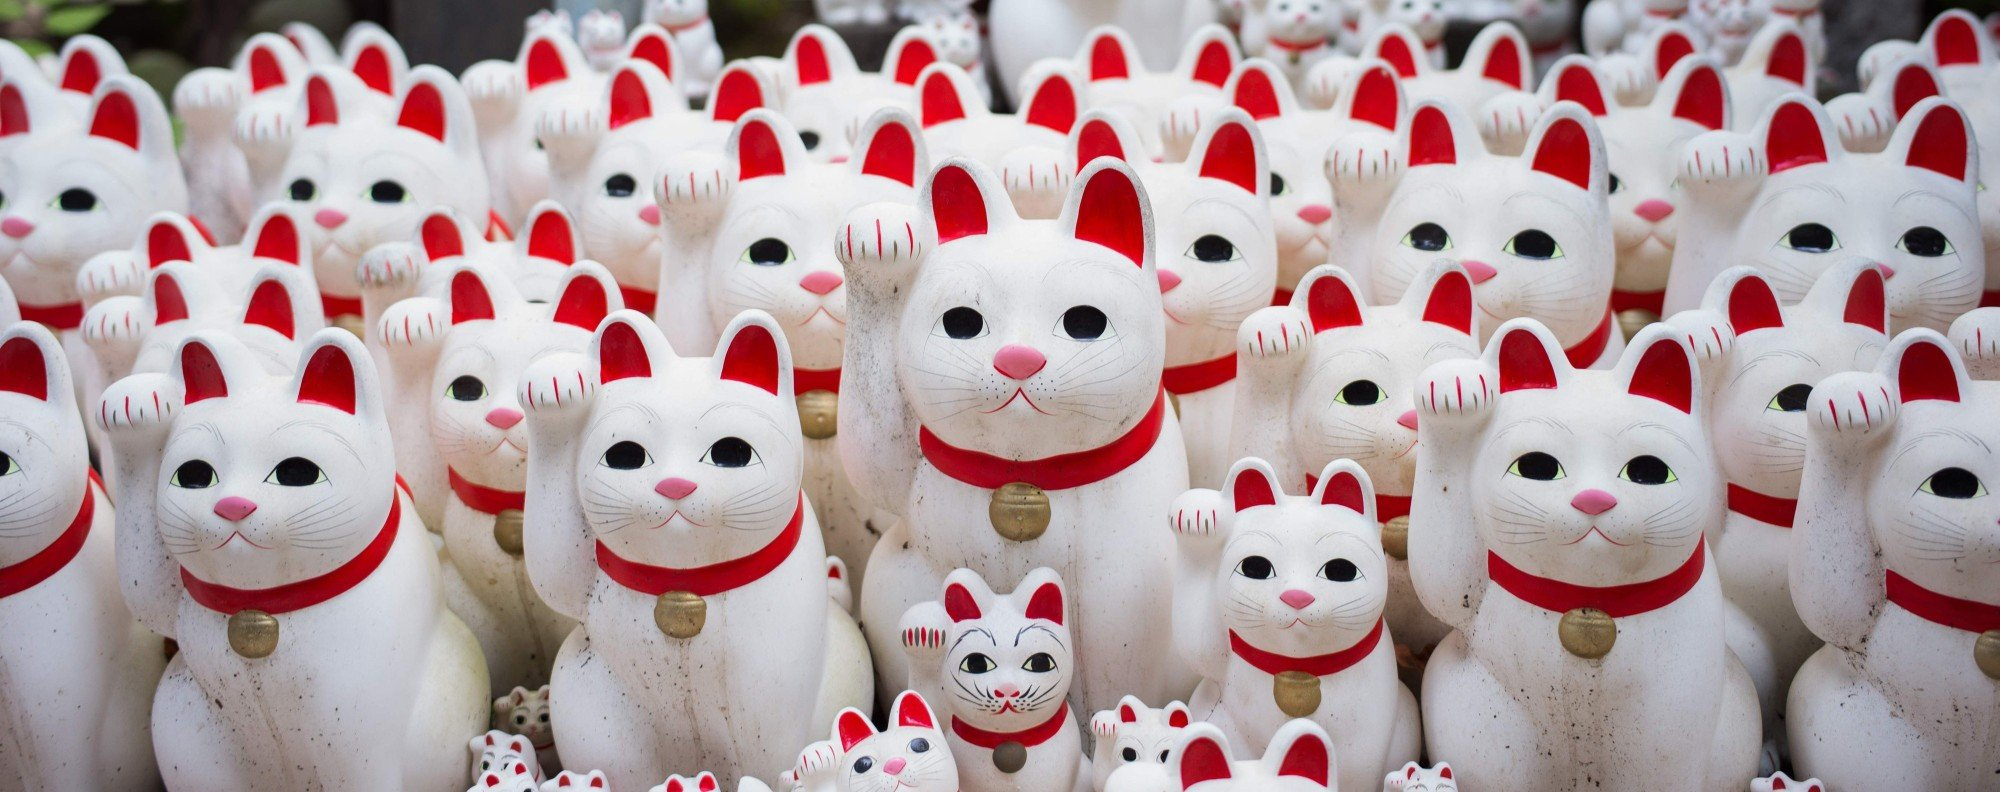 Cat figurines at Tokyo's Gotokuji temple. Photo: AFP